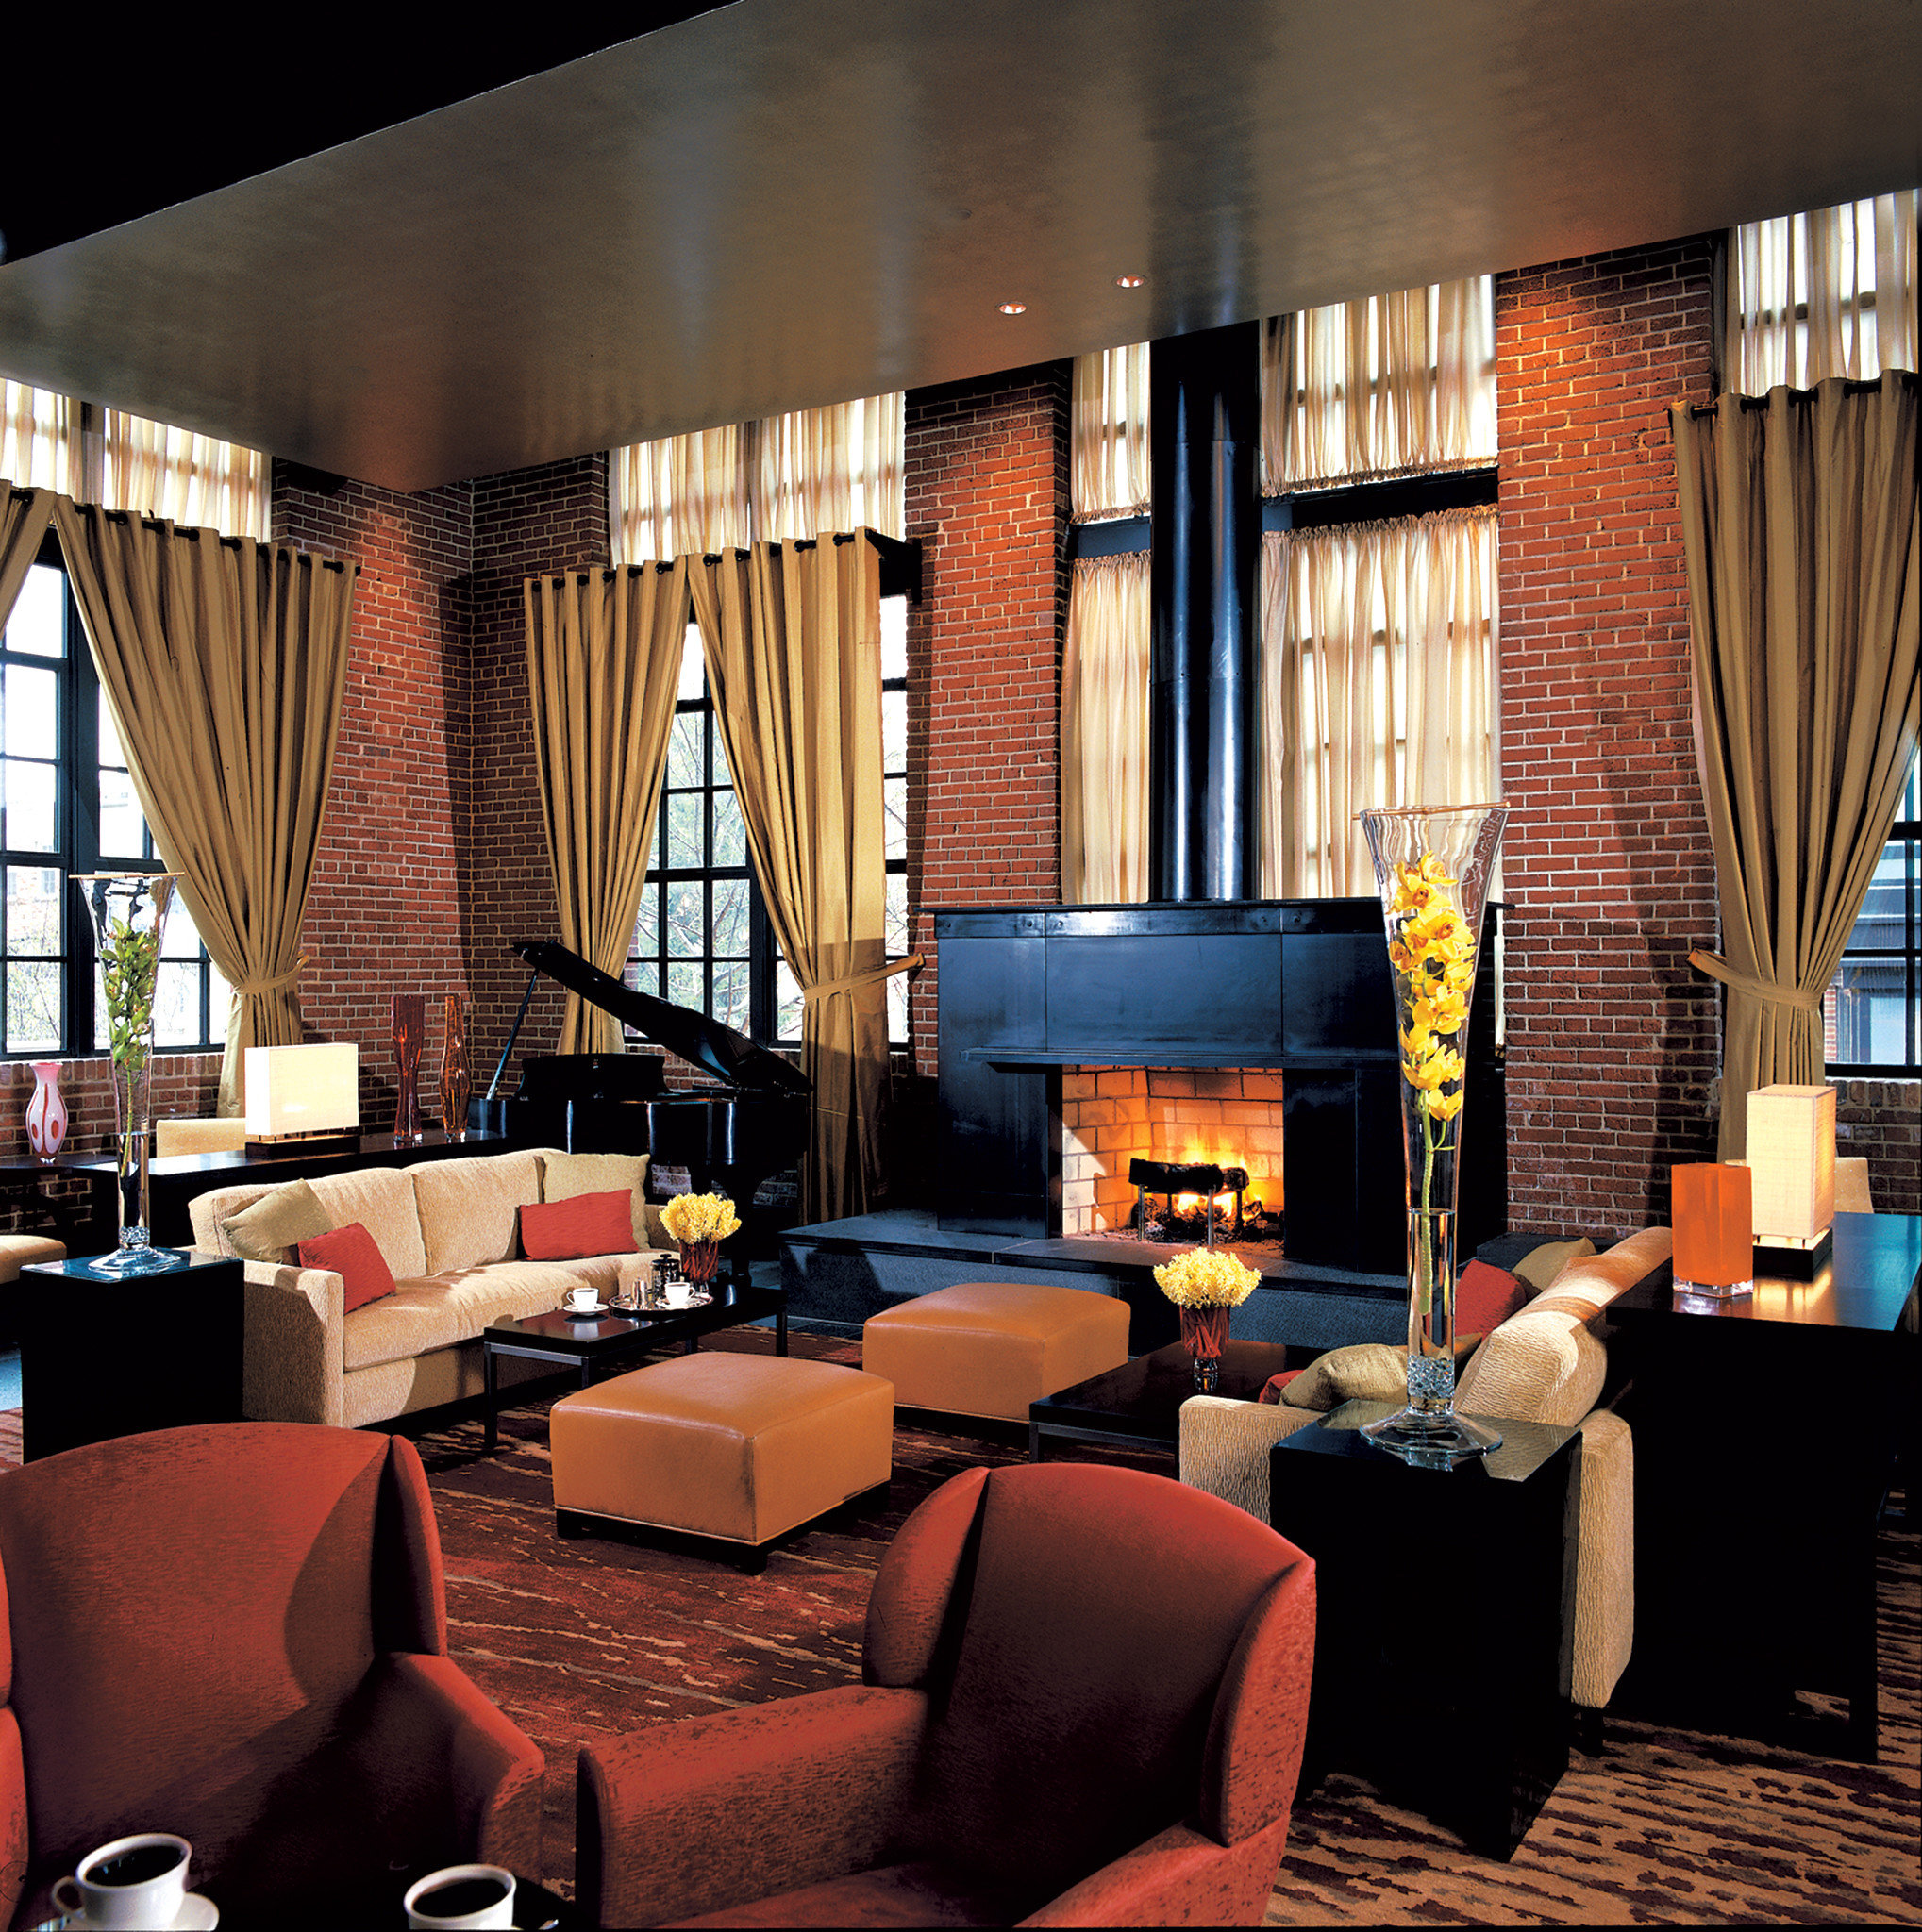 Boutique Hotels Fireplace Hotels Lounge Luxury Modern living room Lobby restaurant home Bar Suite